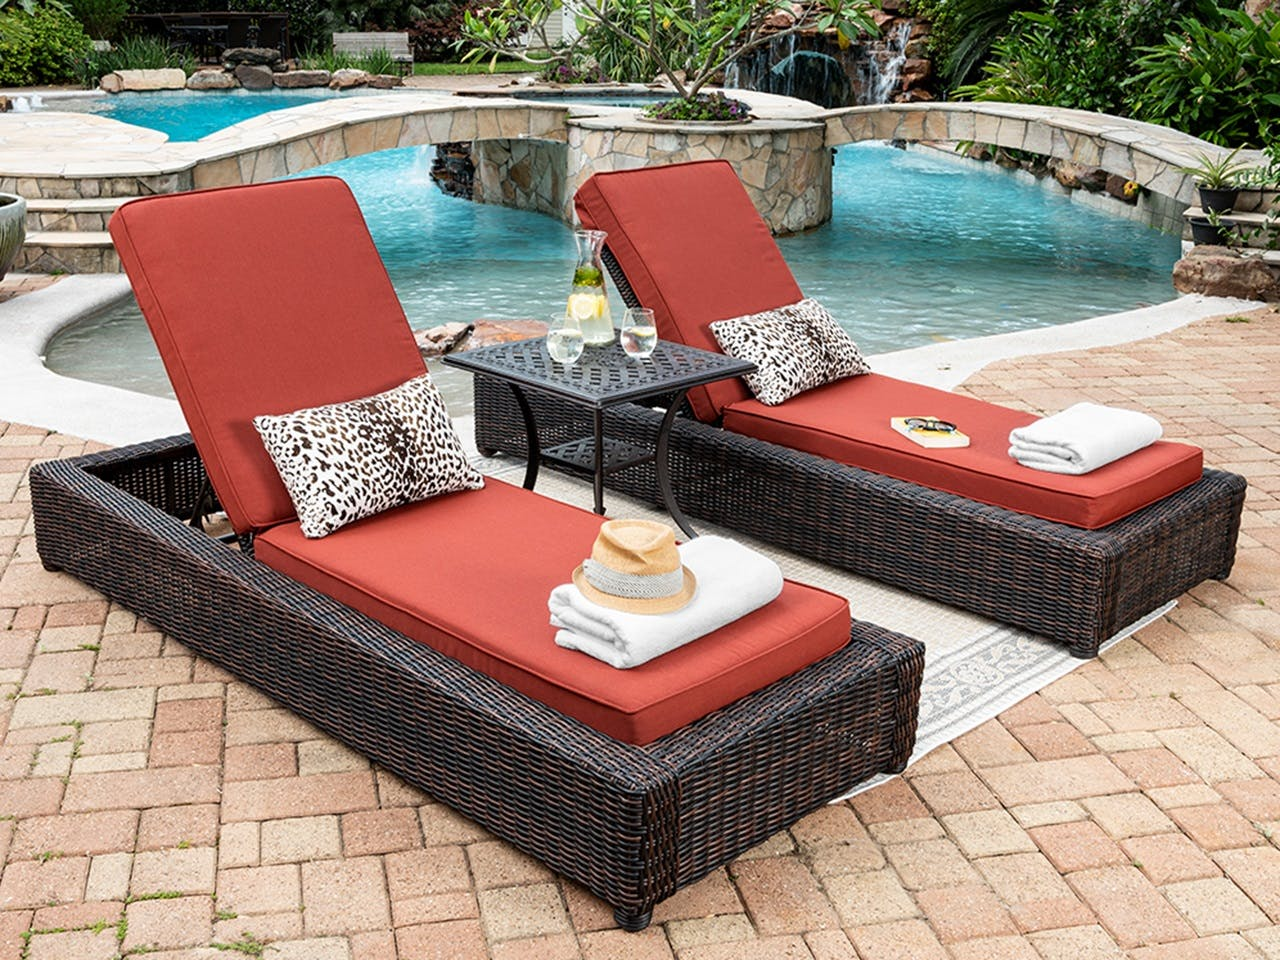 Outdoor Chaise Lounges Chair King Backyard Store